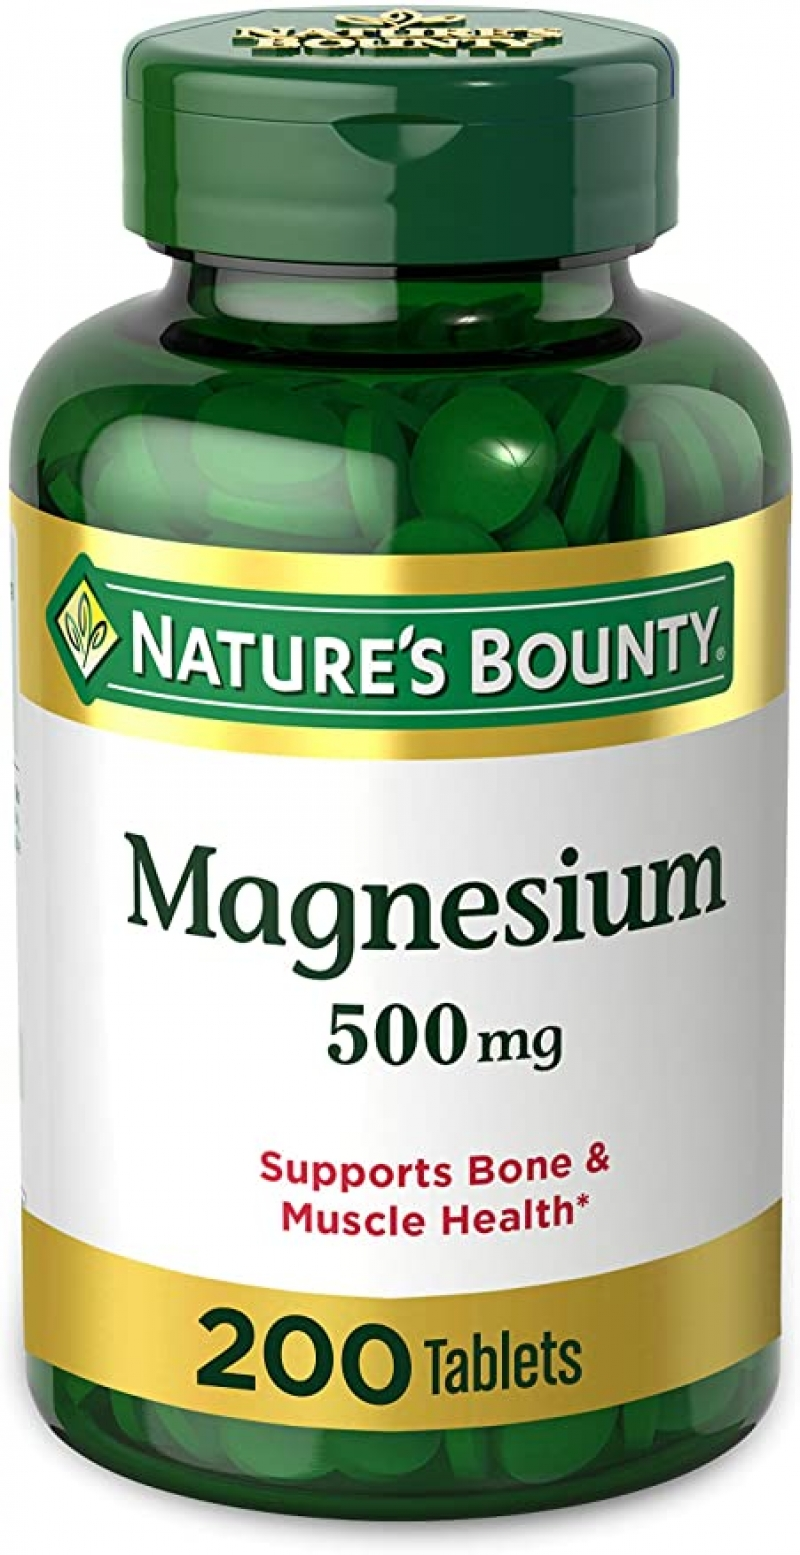 ihocon: Nature's Bounty Magnesium 500mg Tablets for Bone and Muscle Health, 200 Tablets 鎂(促進骨骼/肌肉健康)